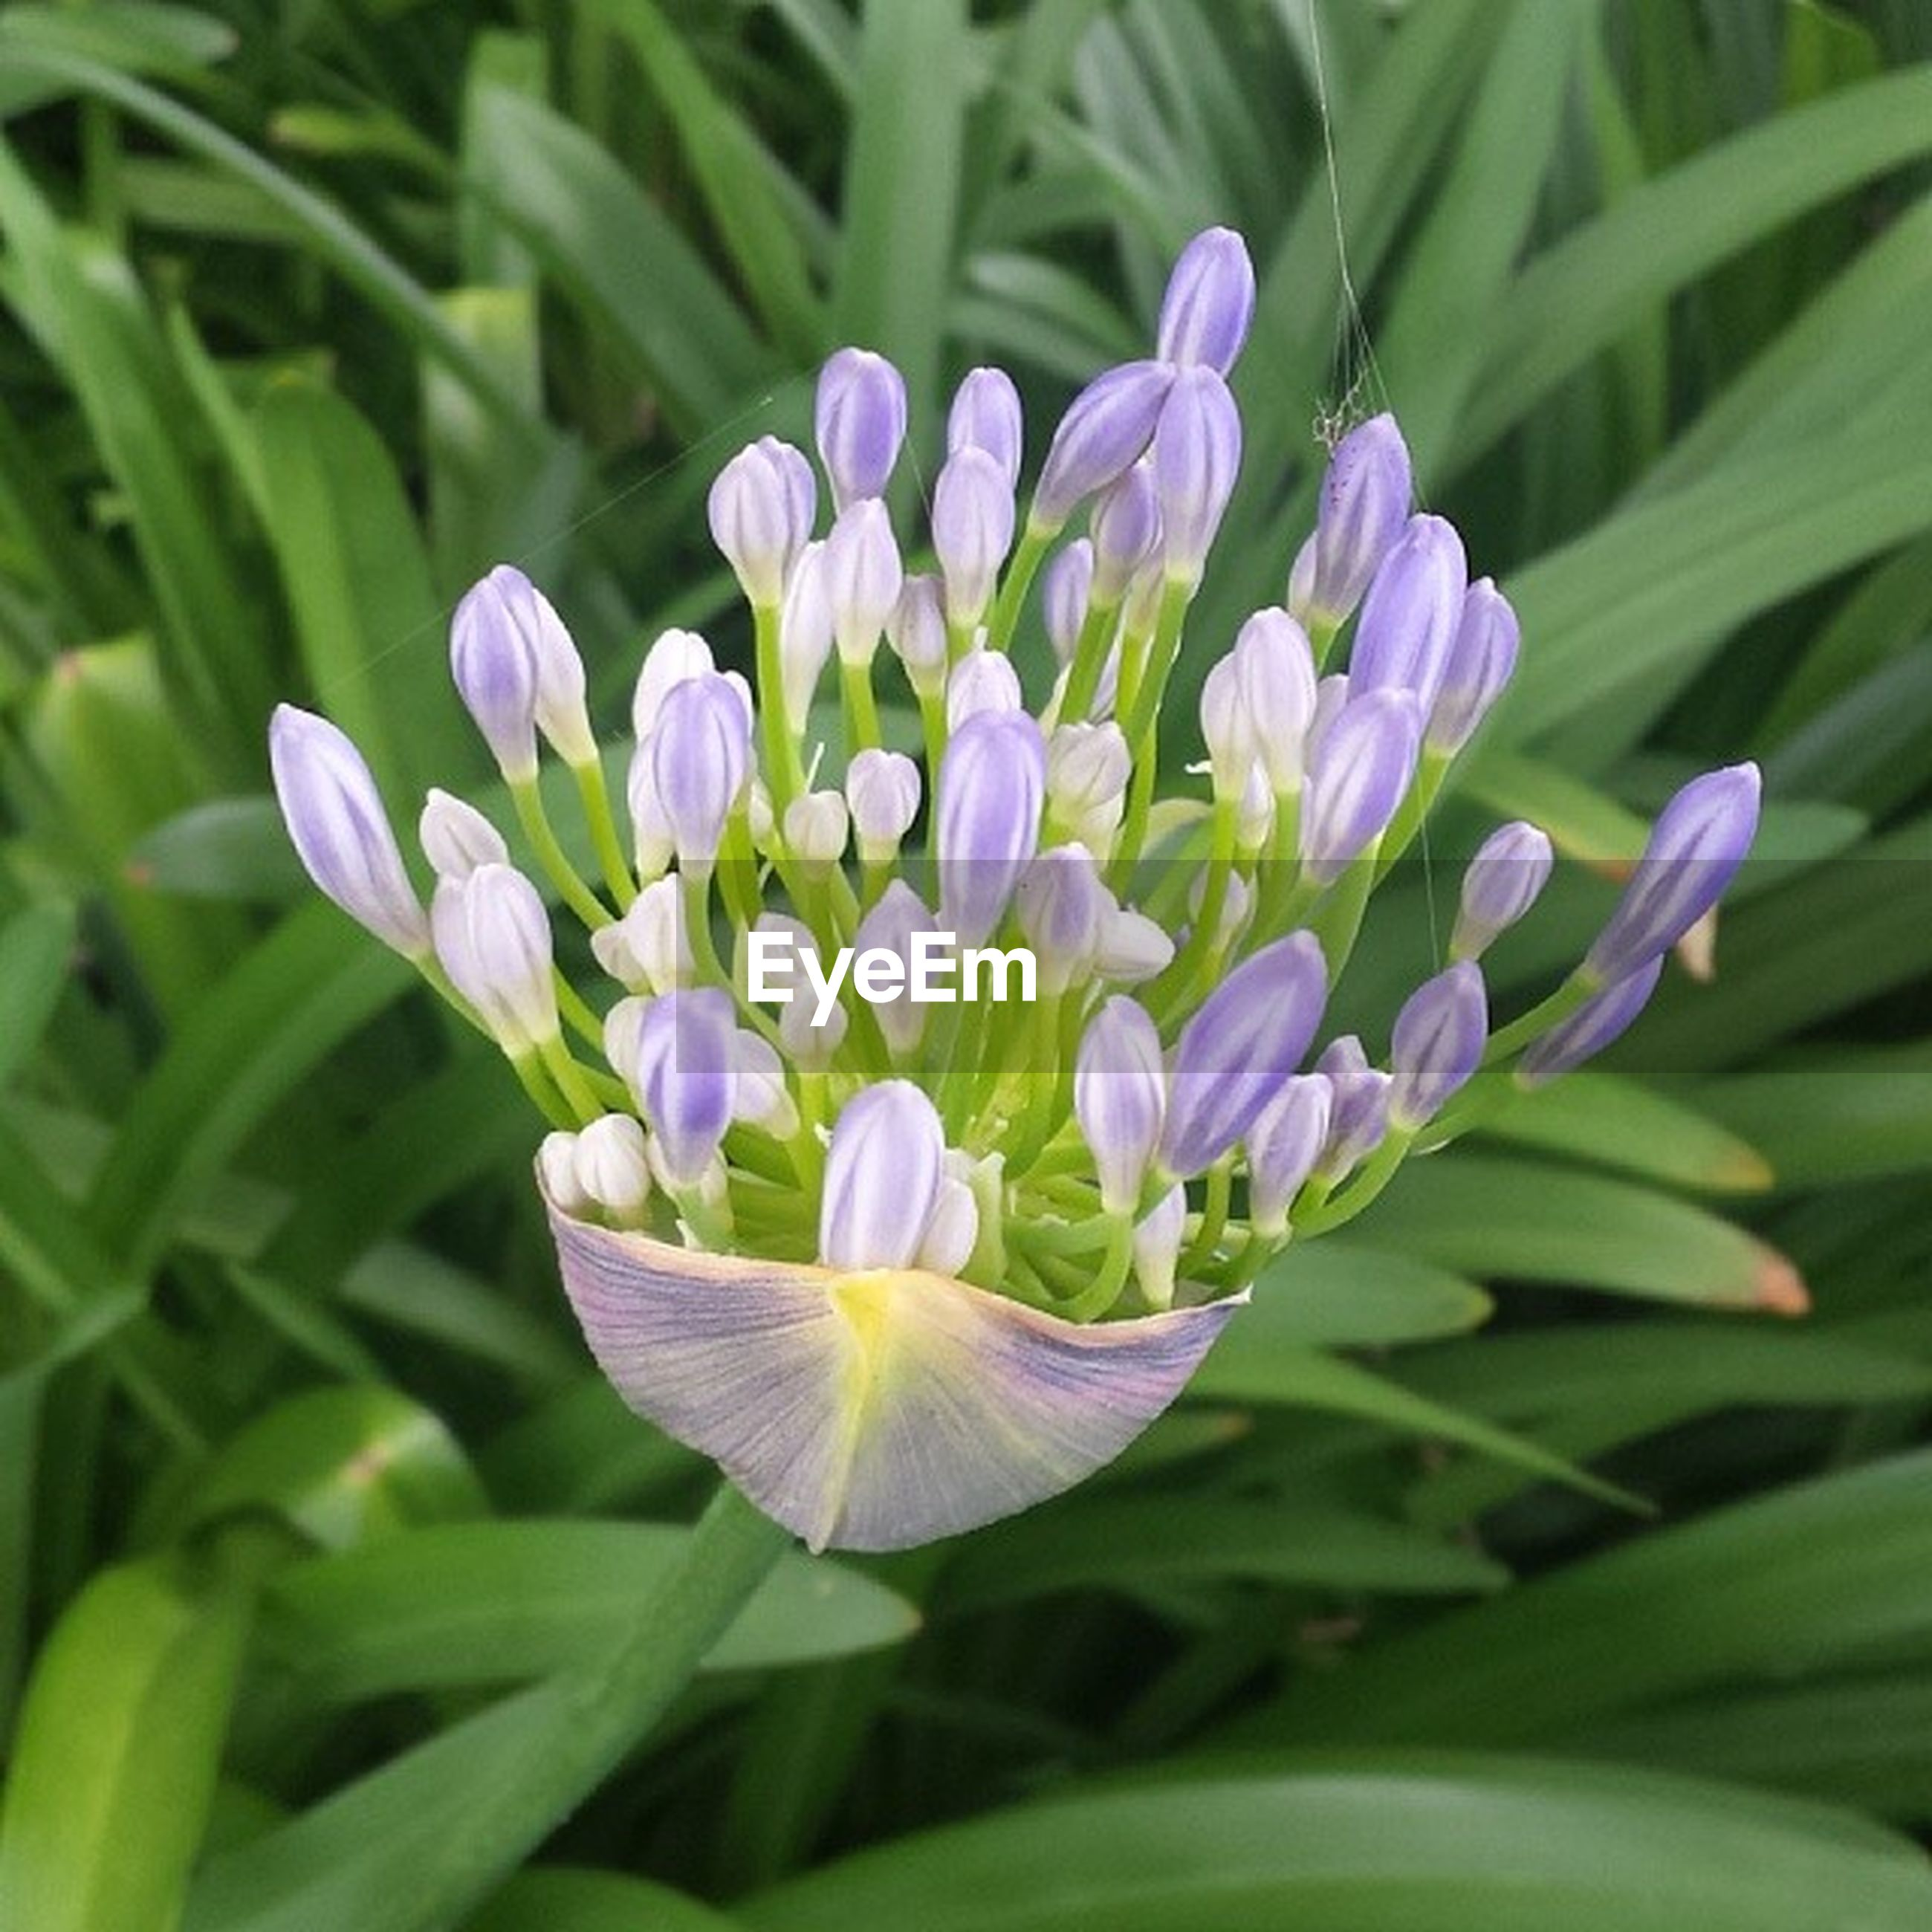 flower, freshness, petal, purple, fragility, growth, beauty in nature, flower head, plant, blooming, nature, close-up, leaf, in bloom, green color, focus on foreground, blue, stem, blossom, field